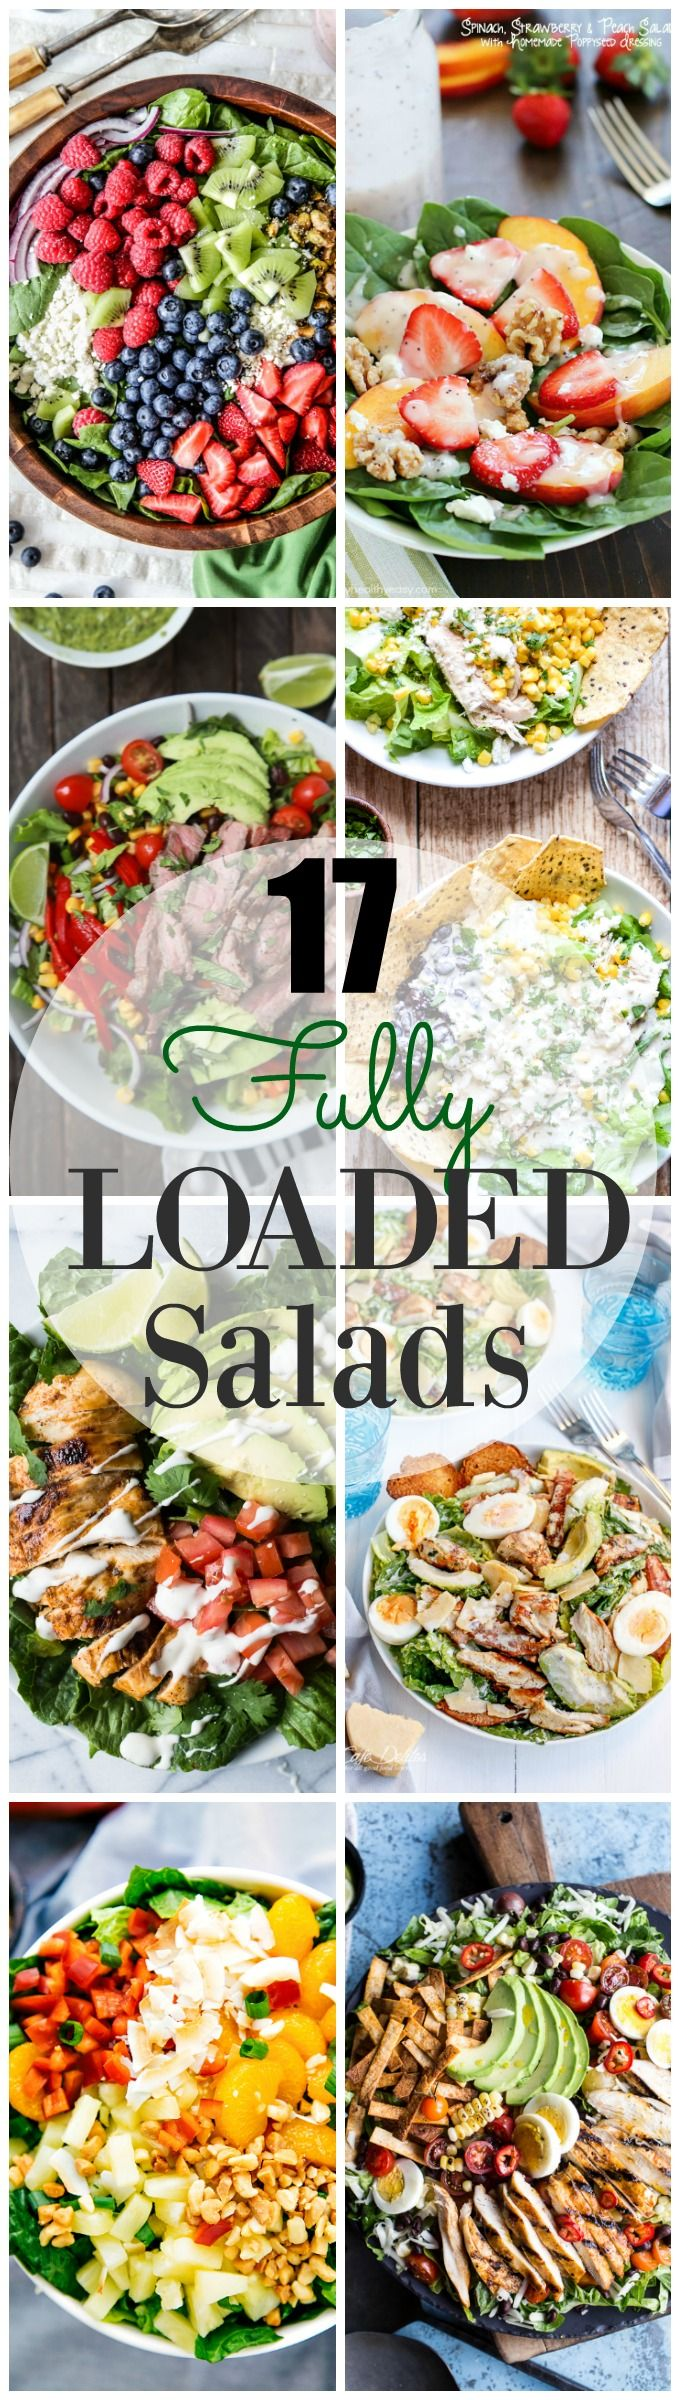 Loaded Salad ~ 17 fully loaded salad recipes sure to satisfy any hunger craving!